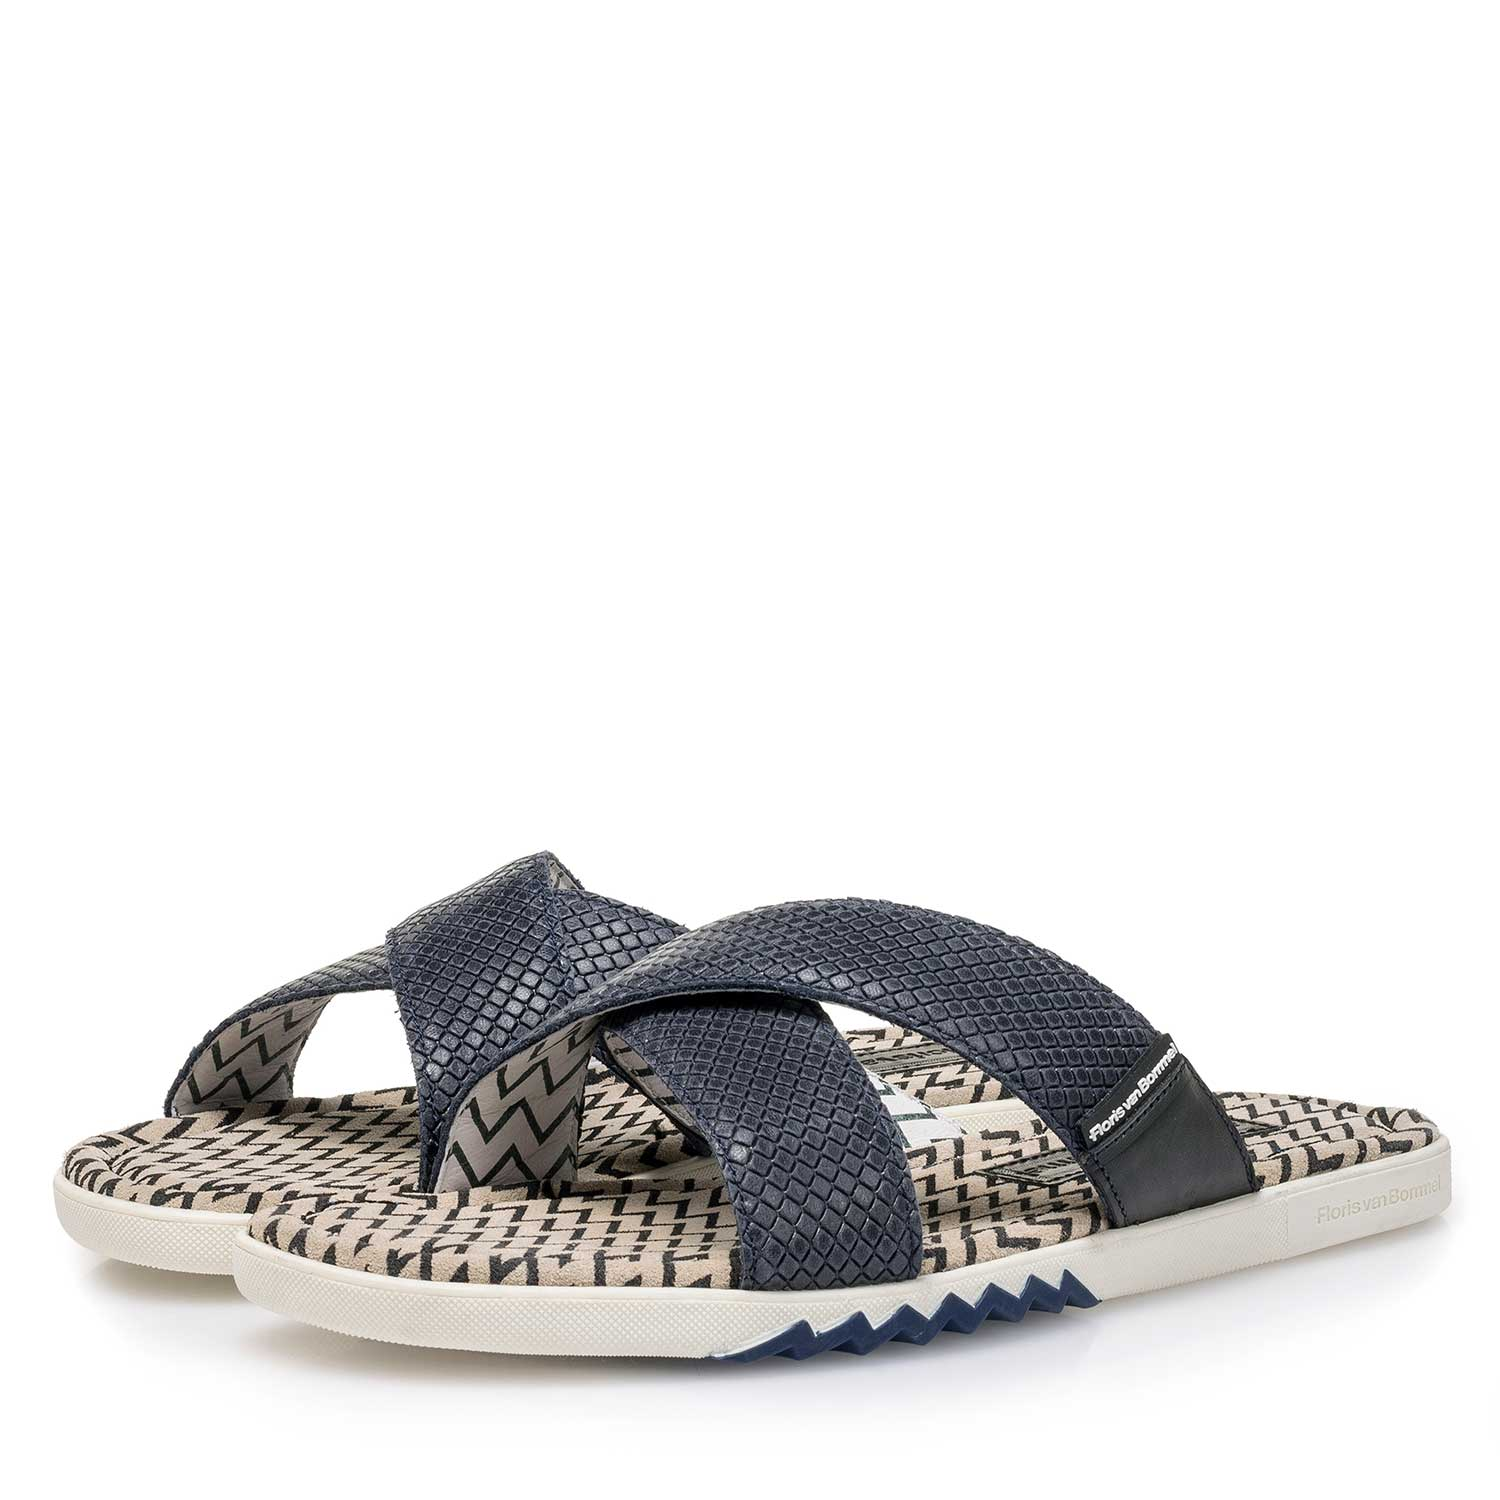 20200/00 - Blue printed leather slipper